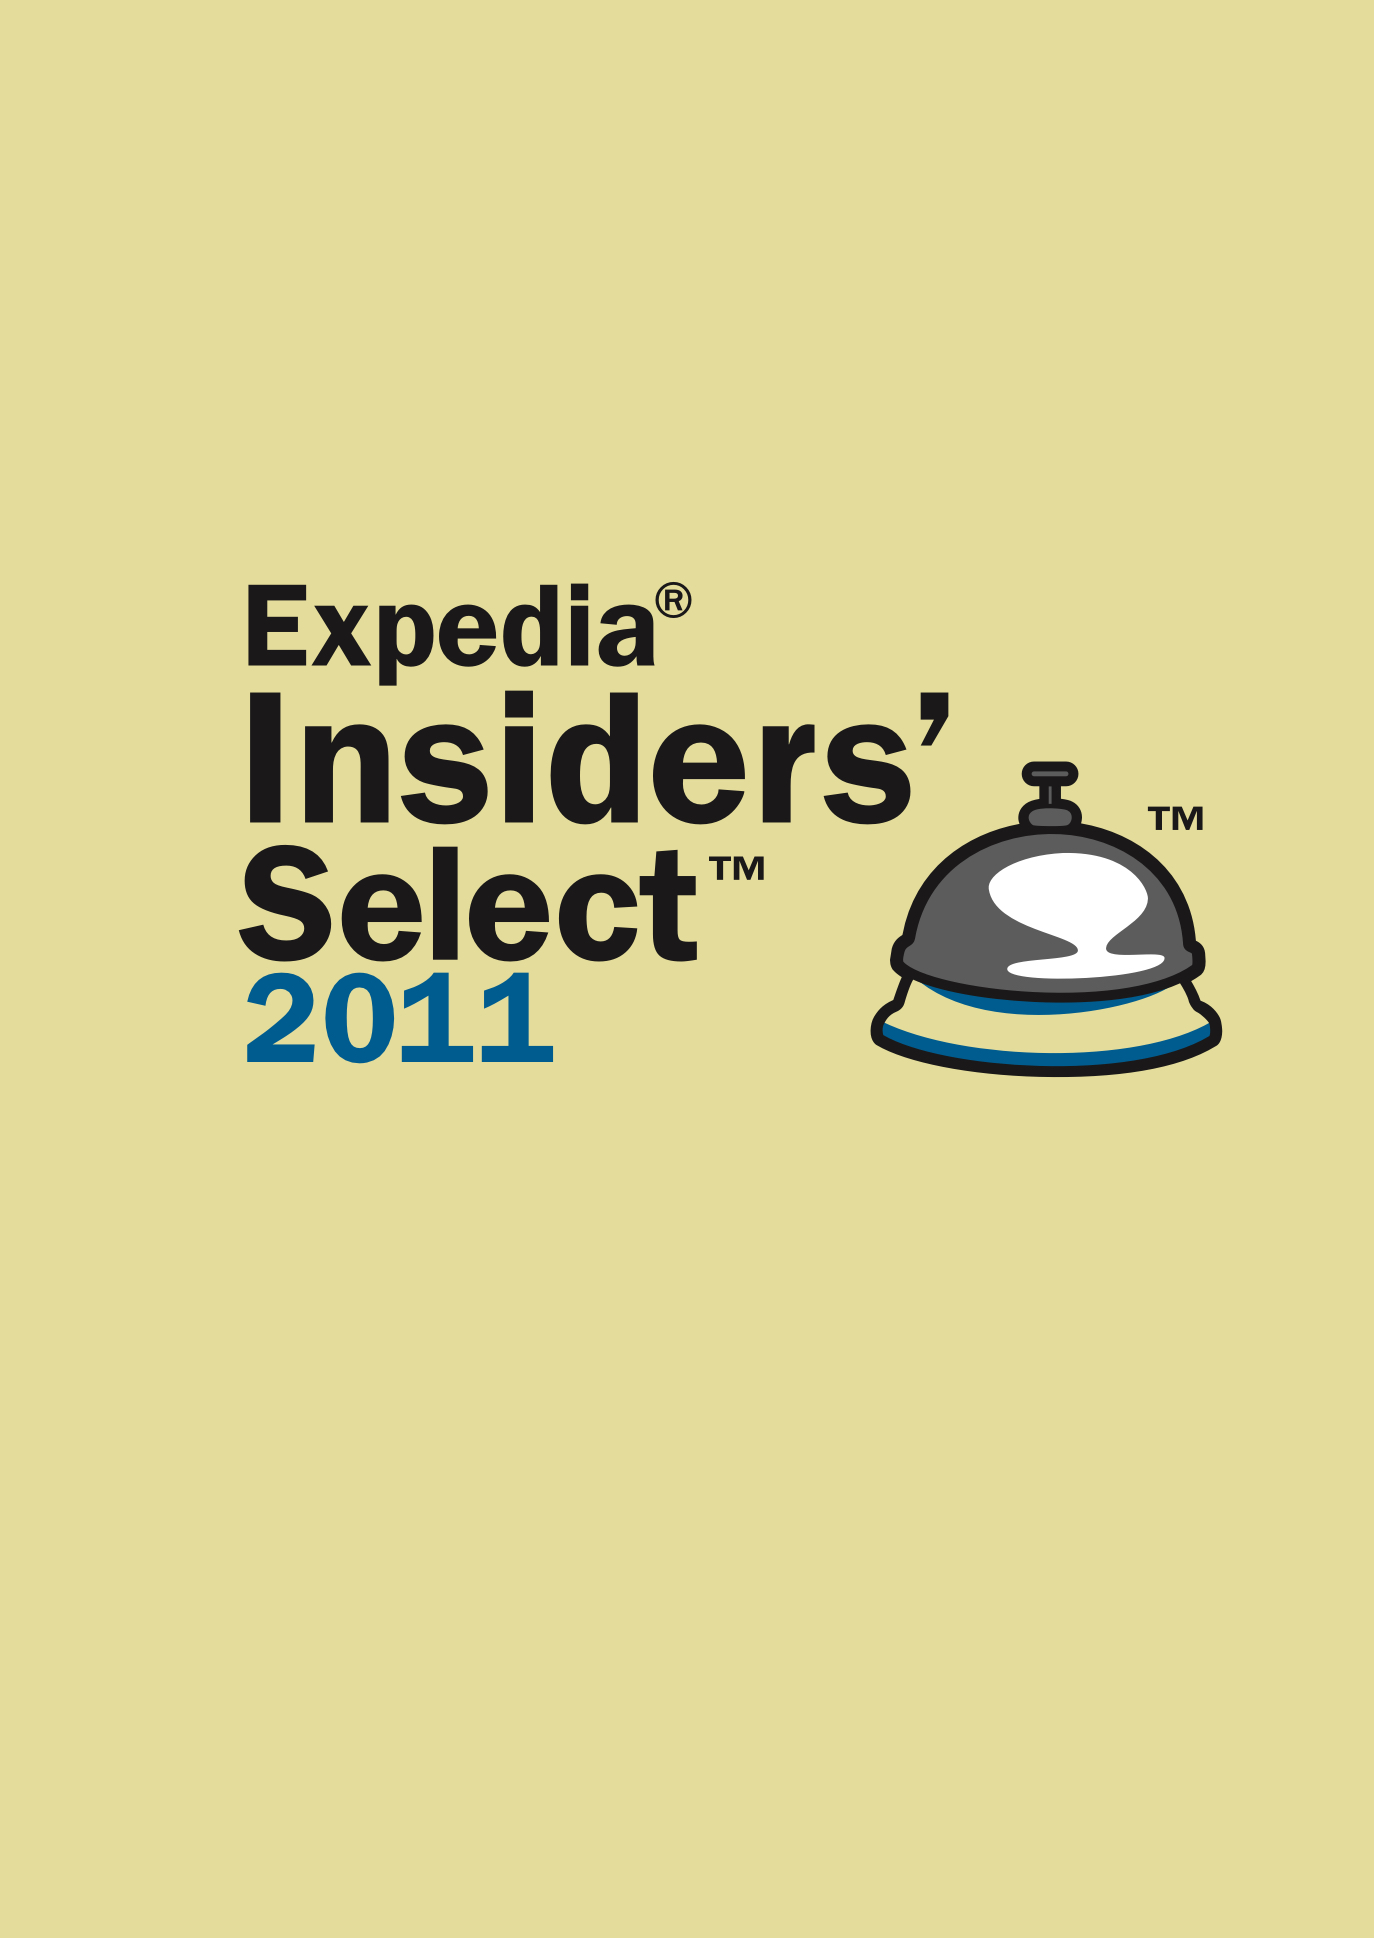 Expedia Insider Select 2011<br>—